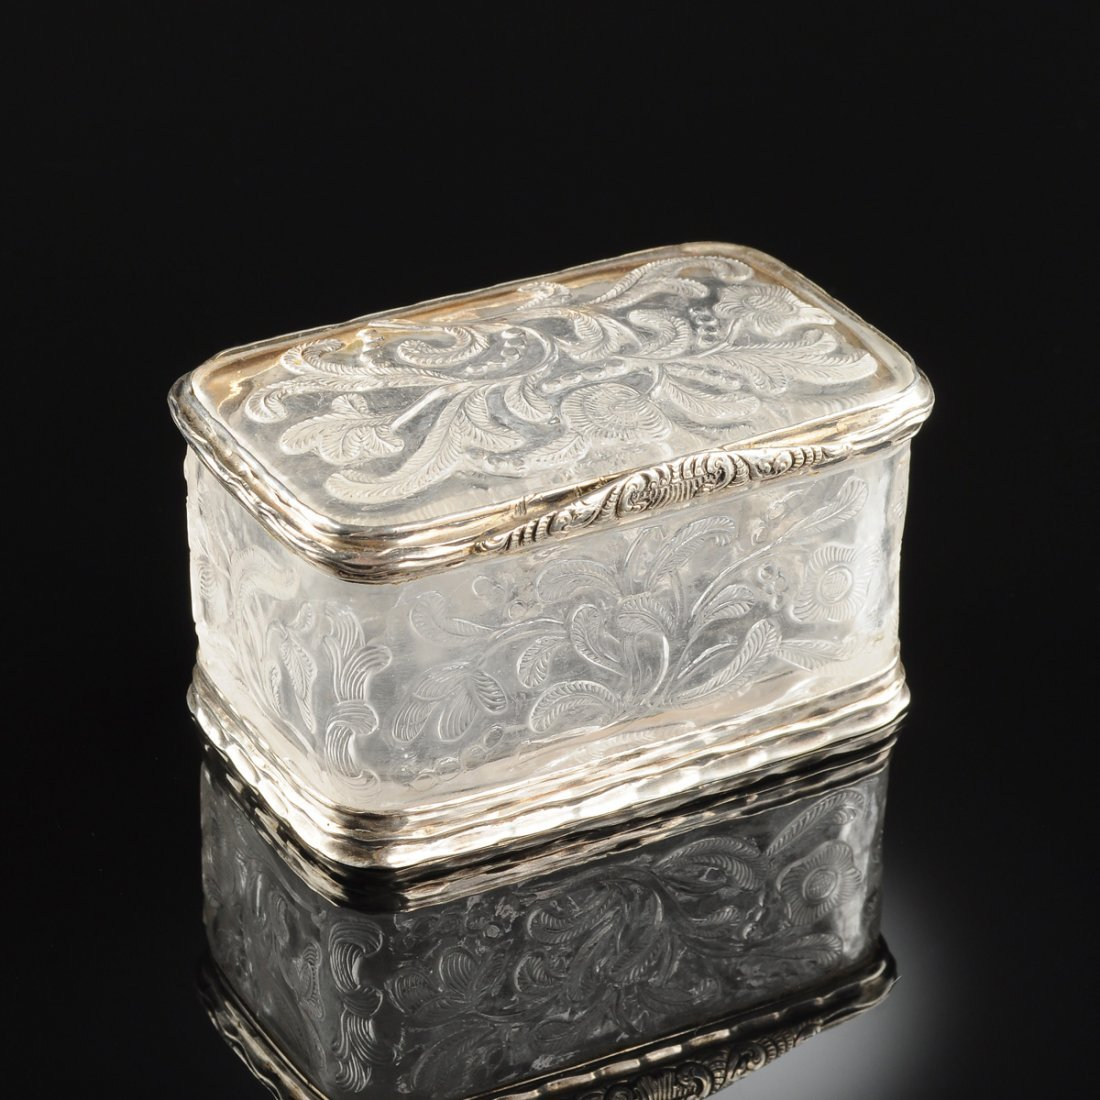 A CONTINENTAL SILVER METAL MOUNTED CARVED ROCK CRYSTAL